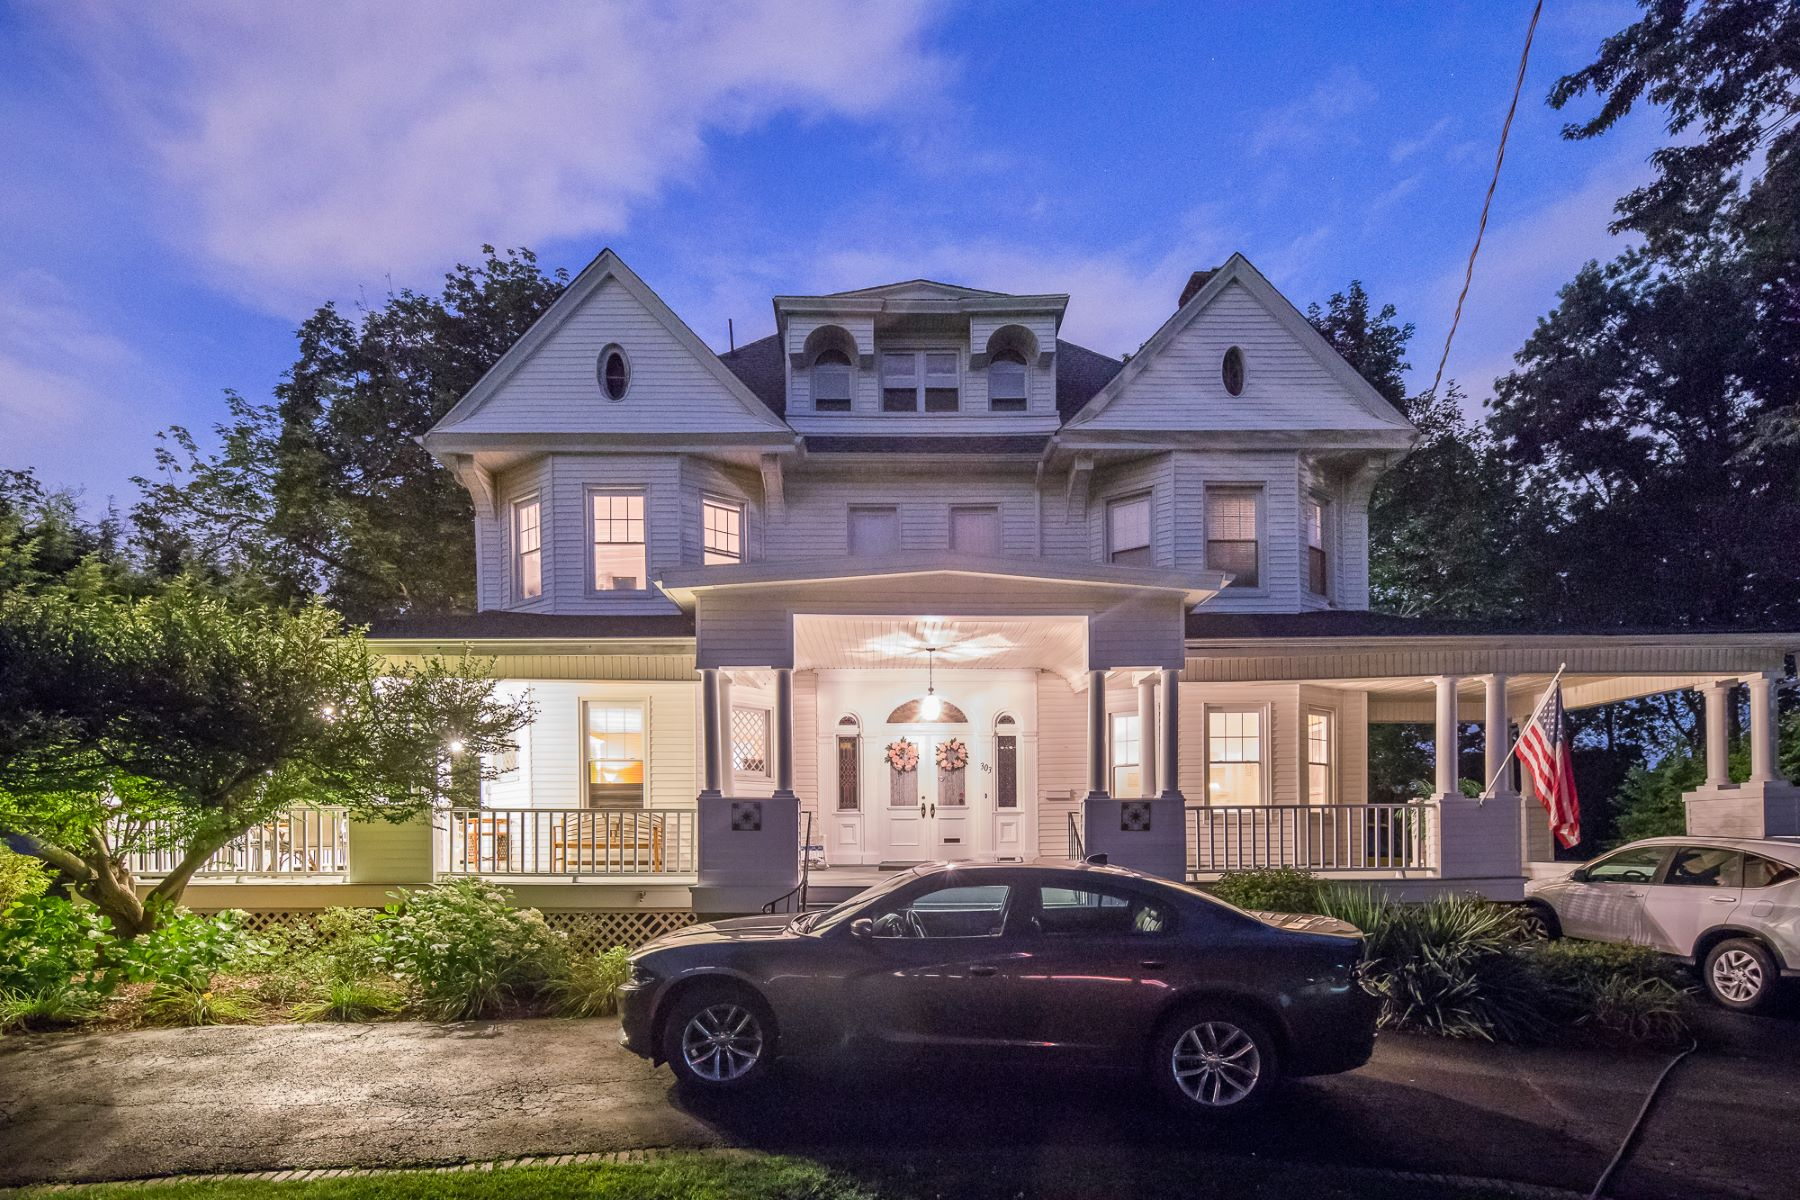 Single Family Home for Sale at 330 Summit Avenue 303 Summit Ave, Hackensack, New Jersey 07601 United States